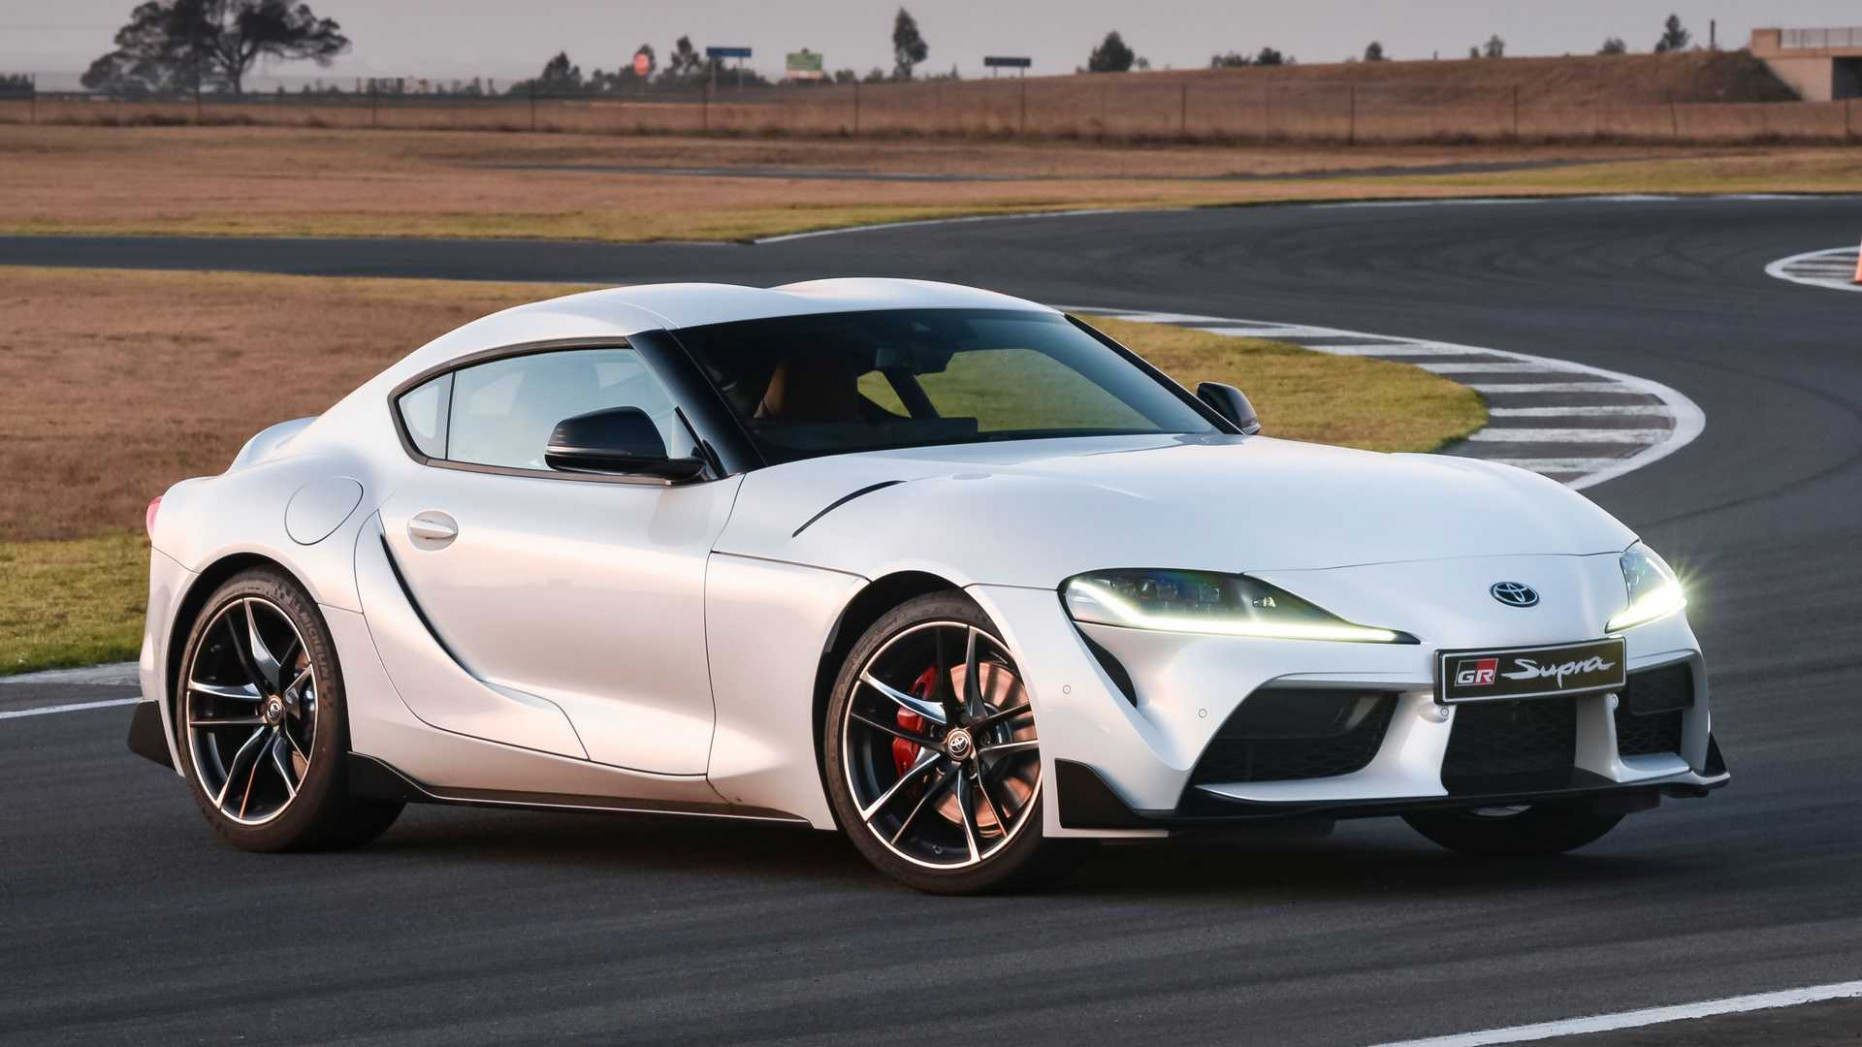 Redesign and Concept 2022 Toyota Supra